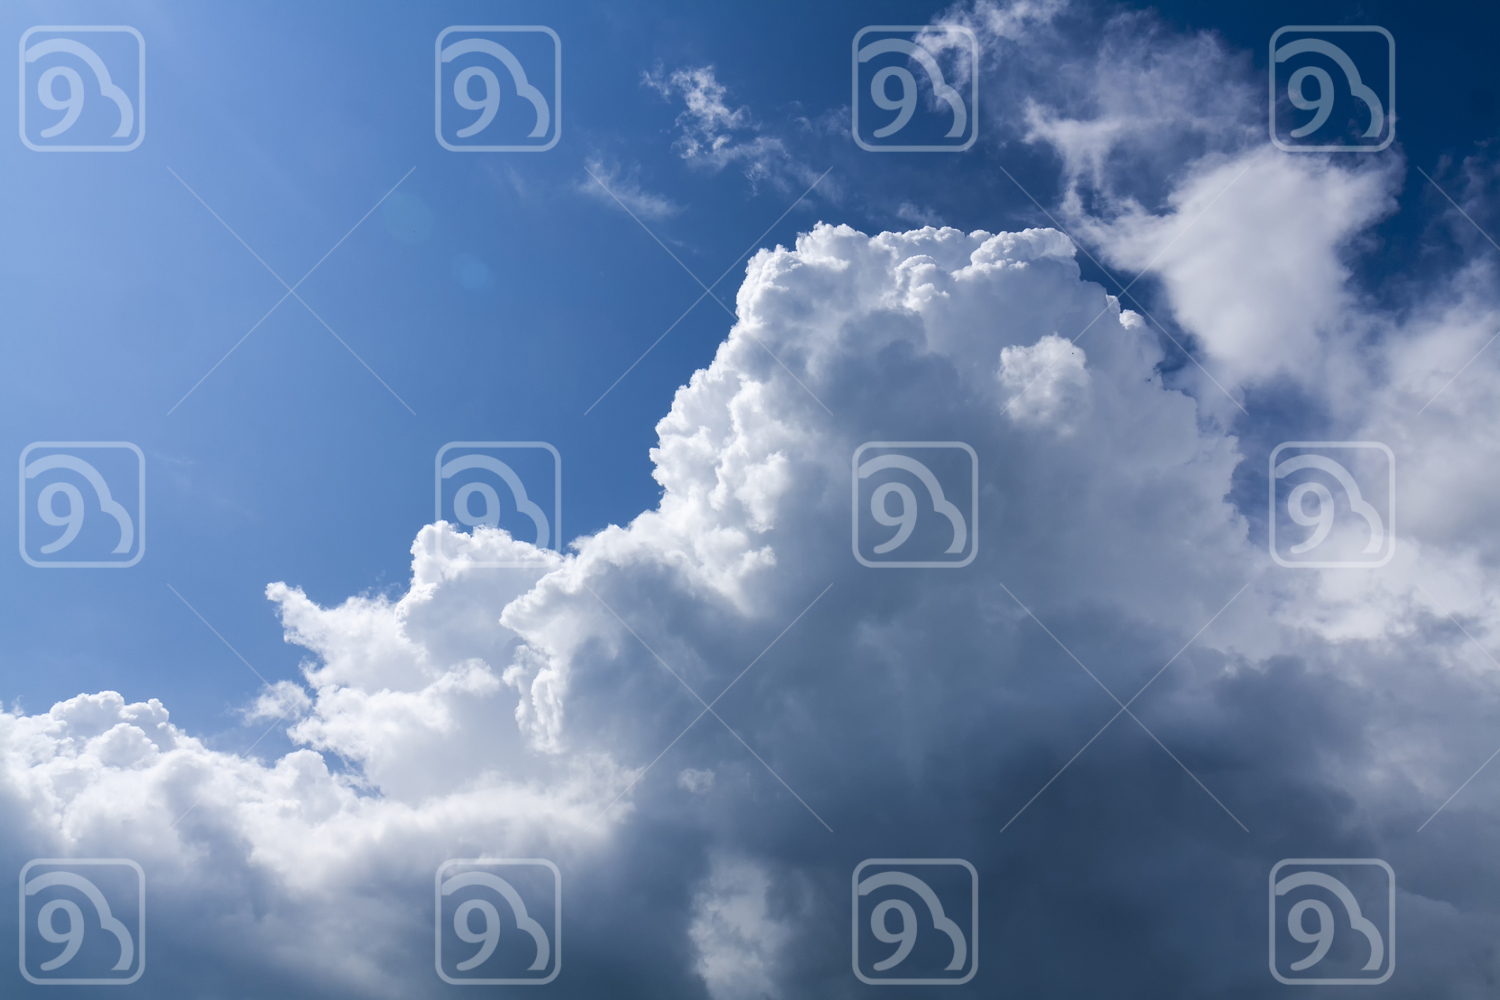 Blue sky with storm clouds